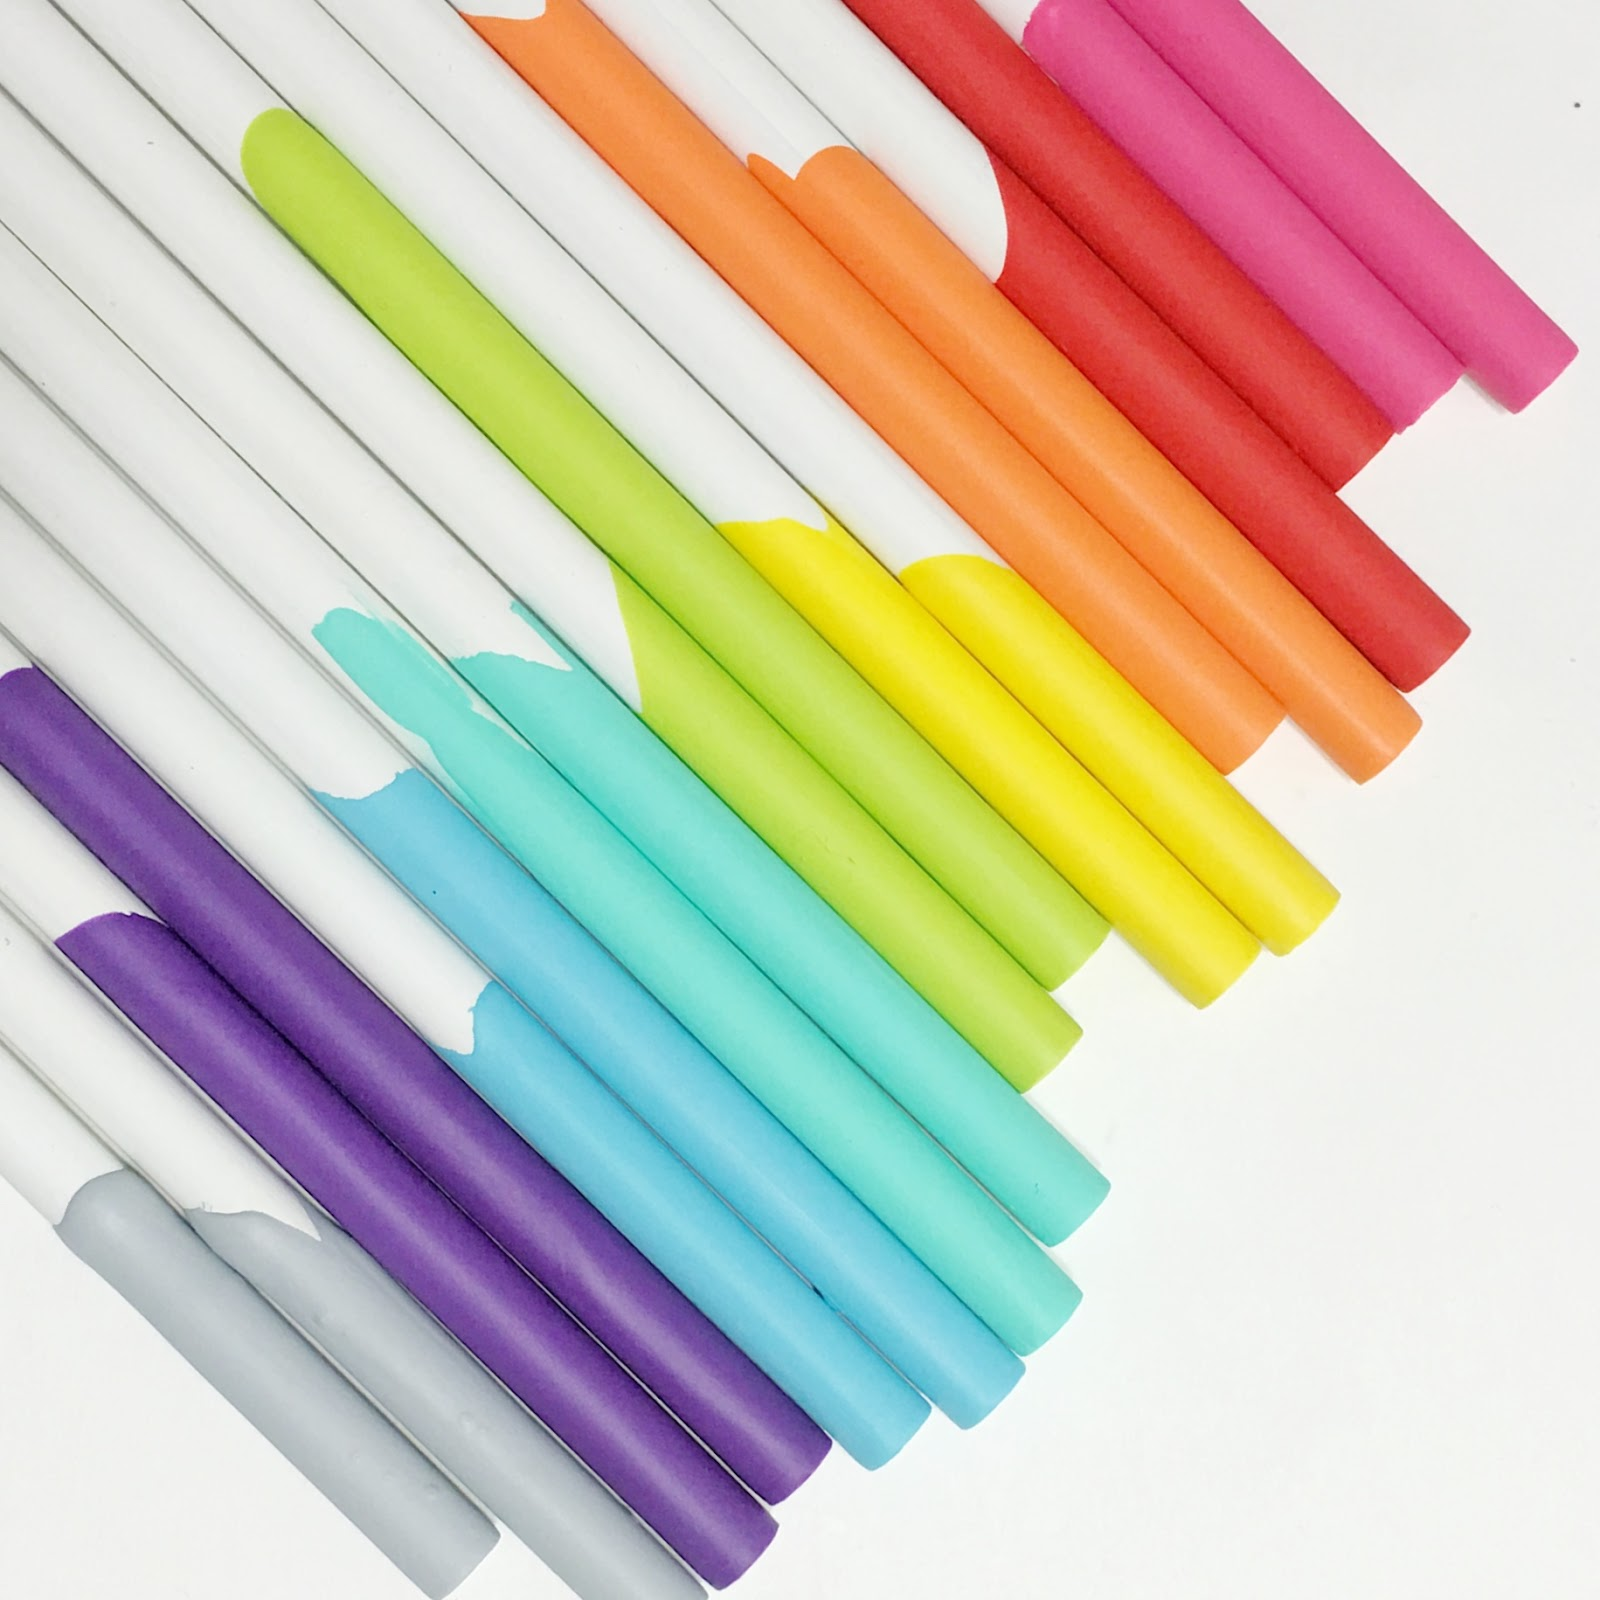 DIY Hand-Dipped Pencils